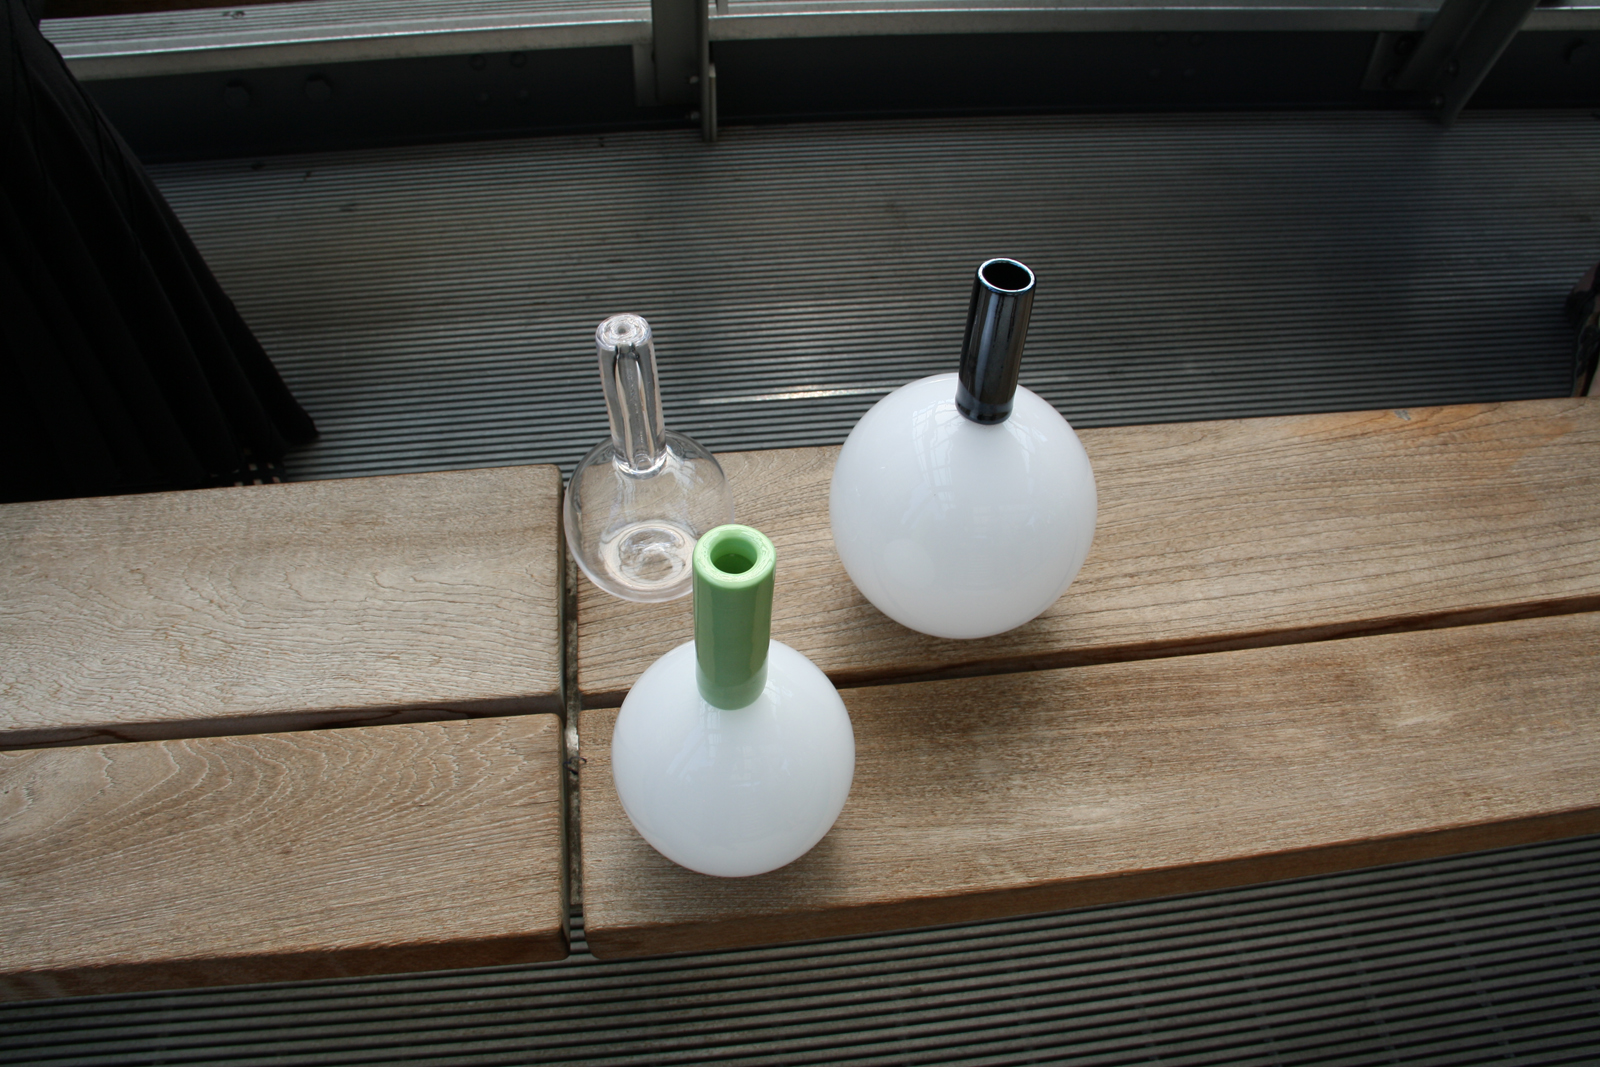 Design prototype by Marc Thorpe for GlassLab in Corning, June 2012